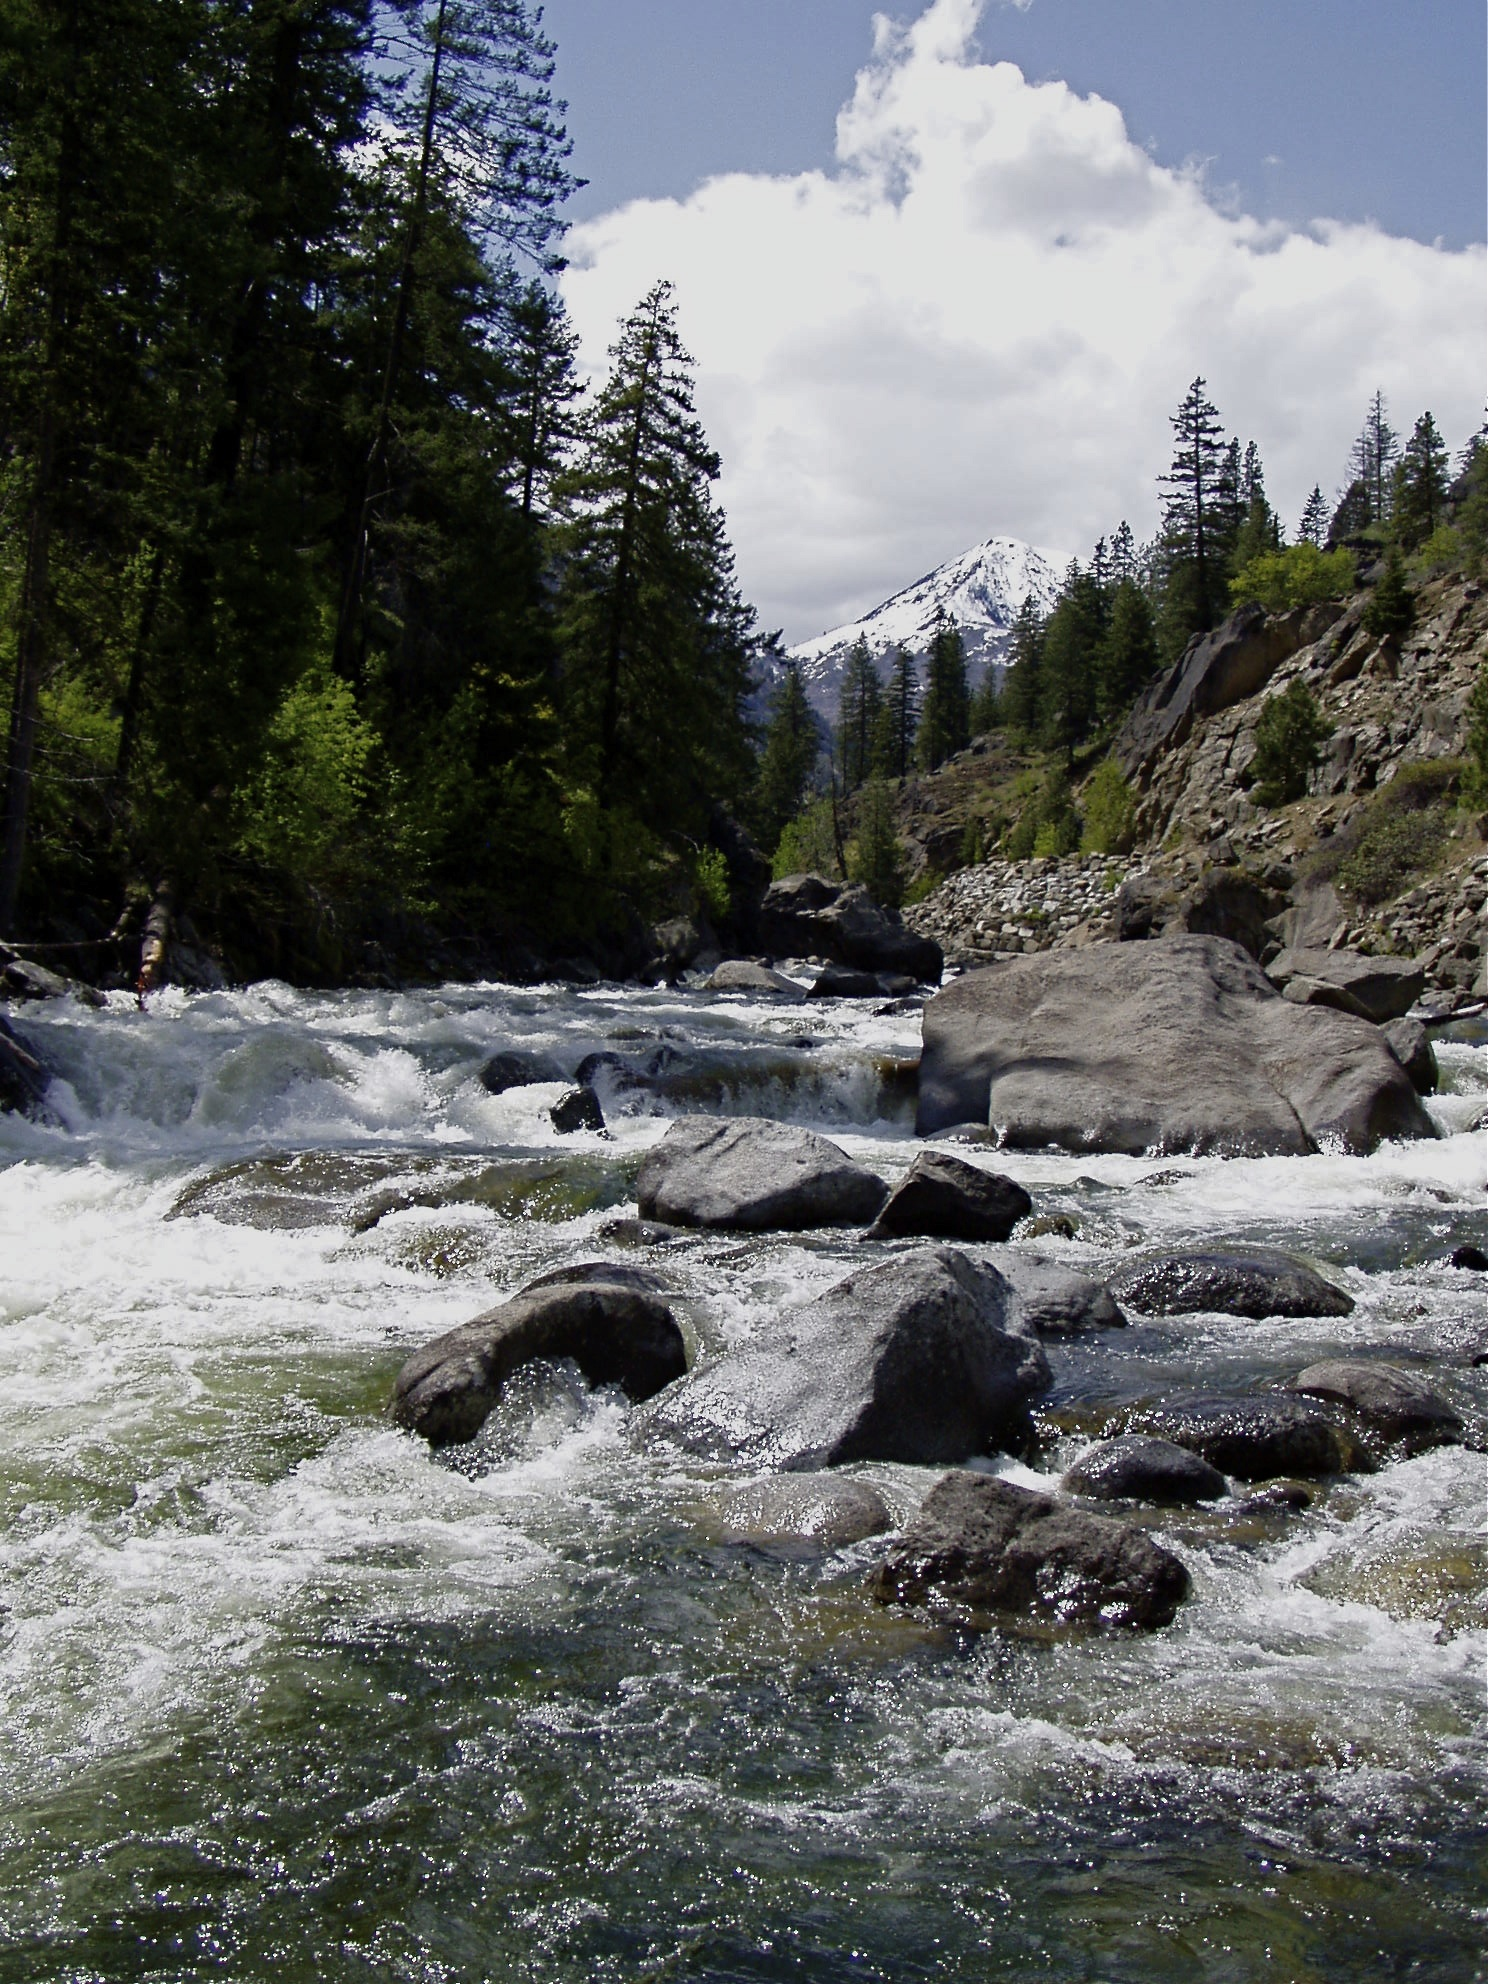 Icicle Creek in Leavenworth. Flowing water over rocks in the foreground. Trees and a mountain the the background.